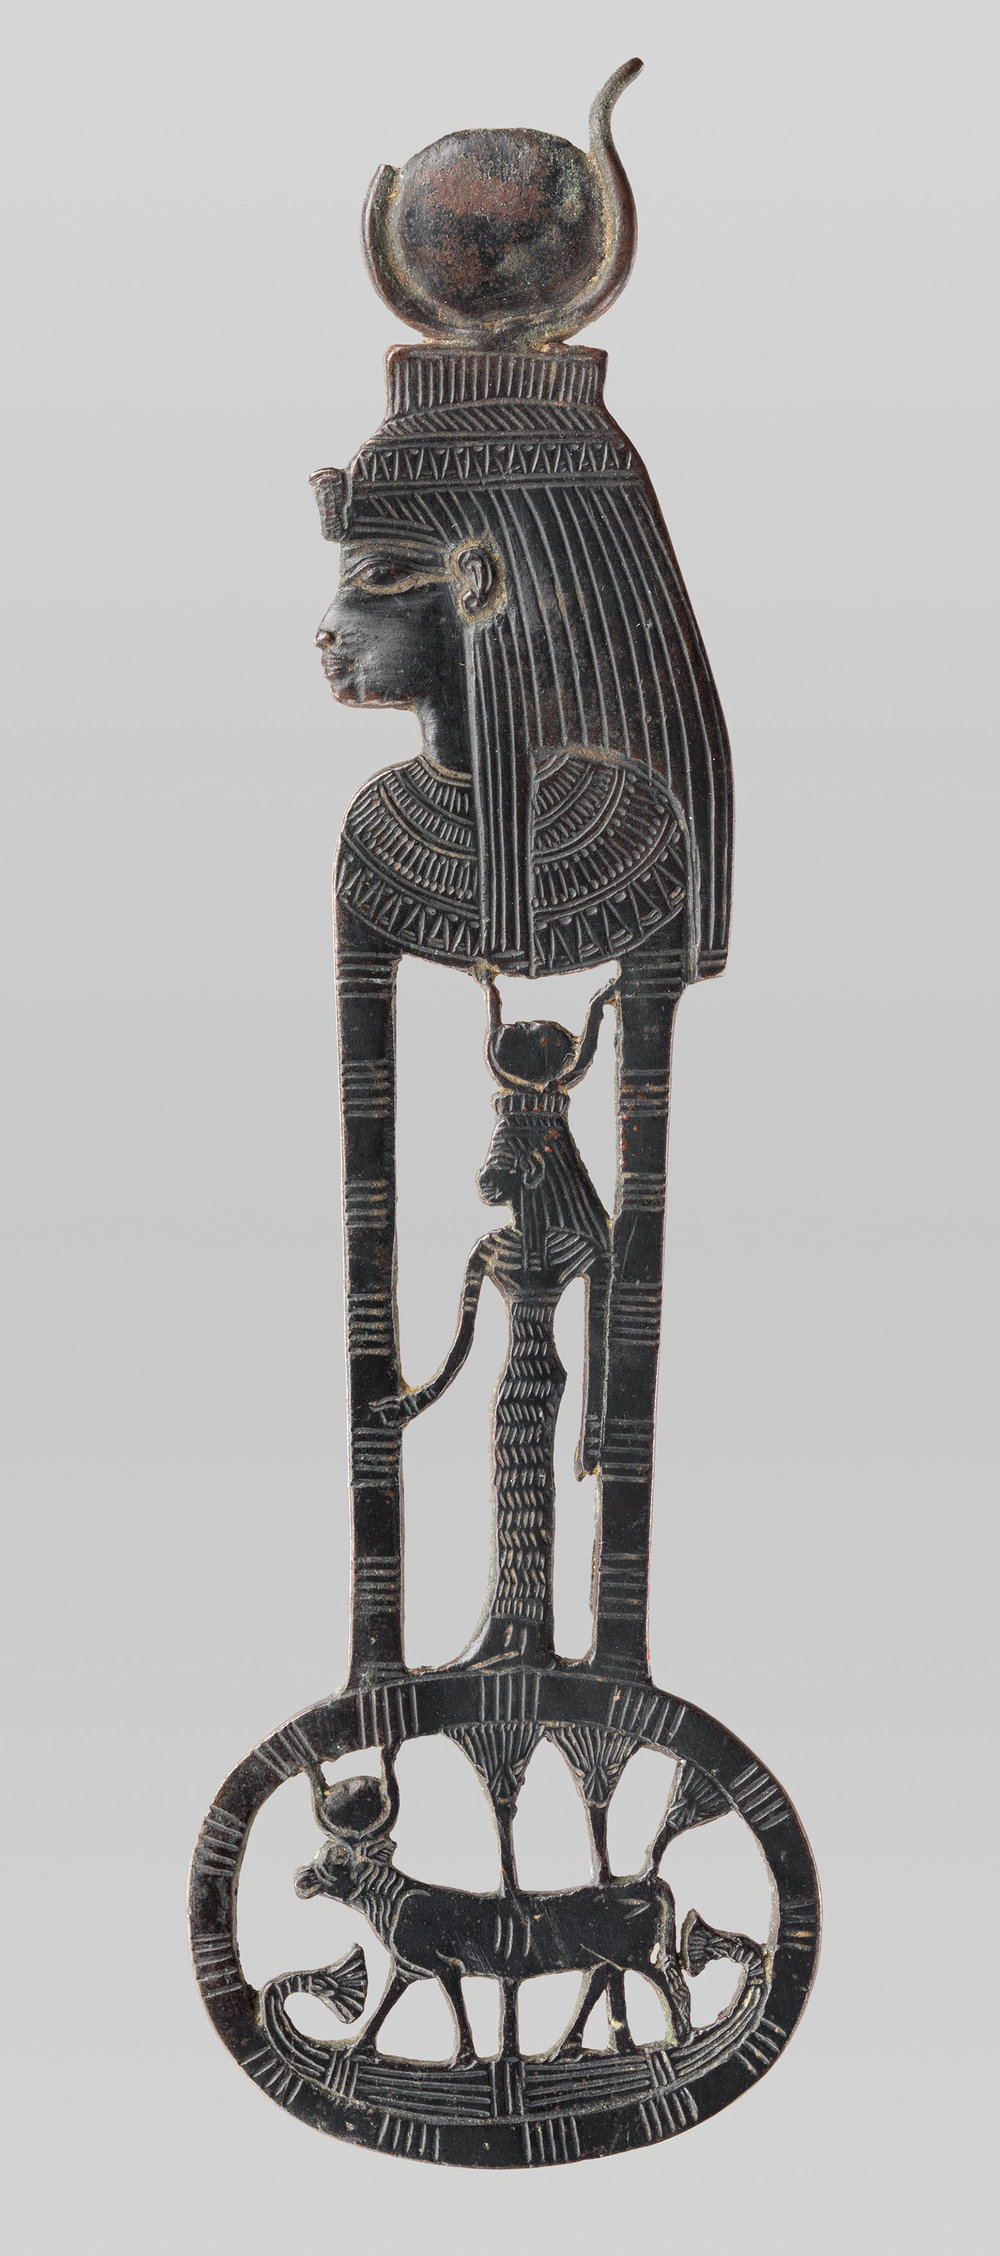 Figure 22: This menat, or necklace counterpoise, depicts the goddess Hathor both in the form of a woman wearing a horned sundisk crown and as a cow wearing a similar headgear. Image courtesy of the Metropolitan Museum of Art [51.157.2, Rogers Fund, 1951].